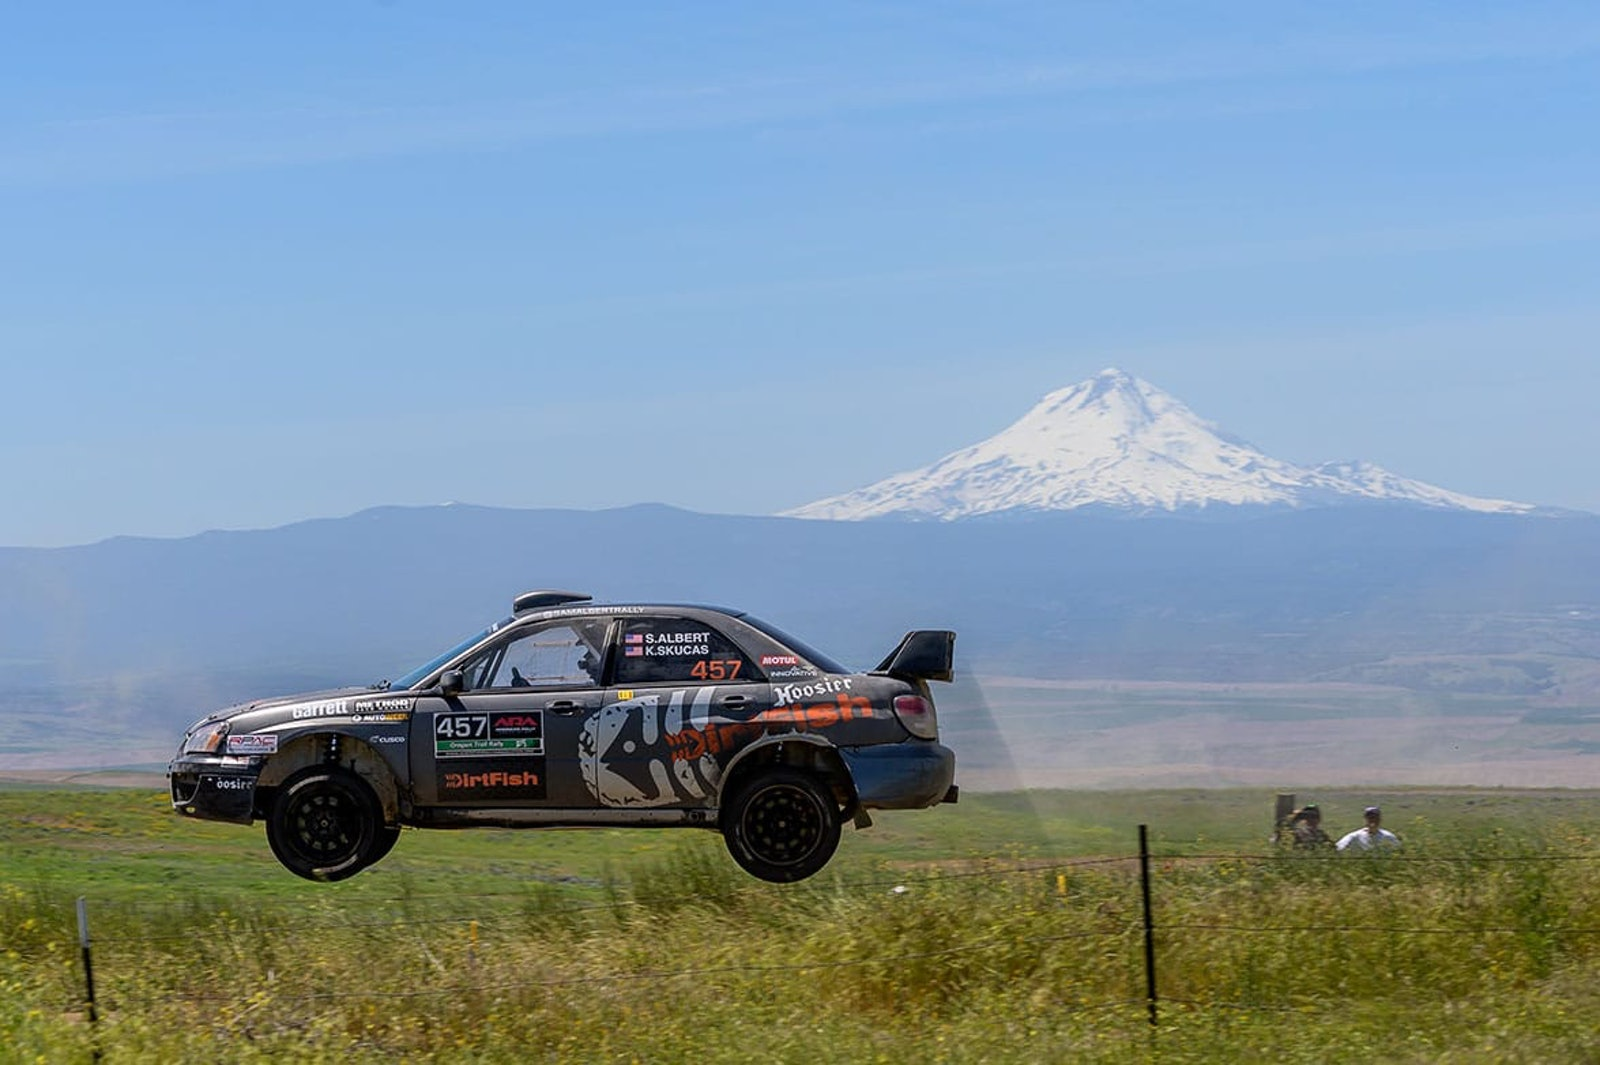 sam albert rally dirtfish oregon trail